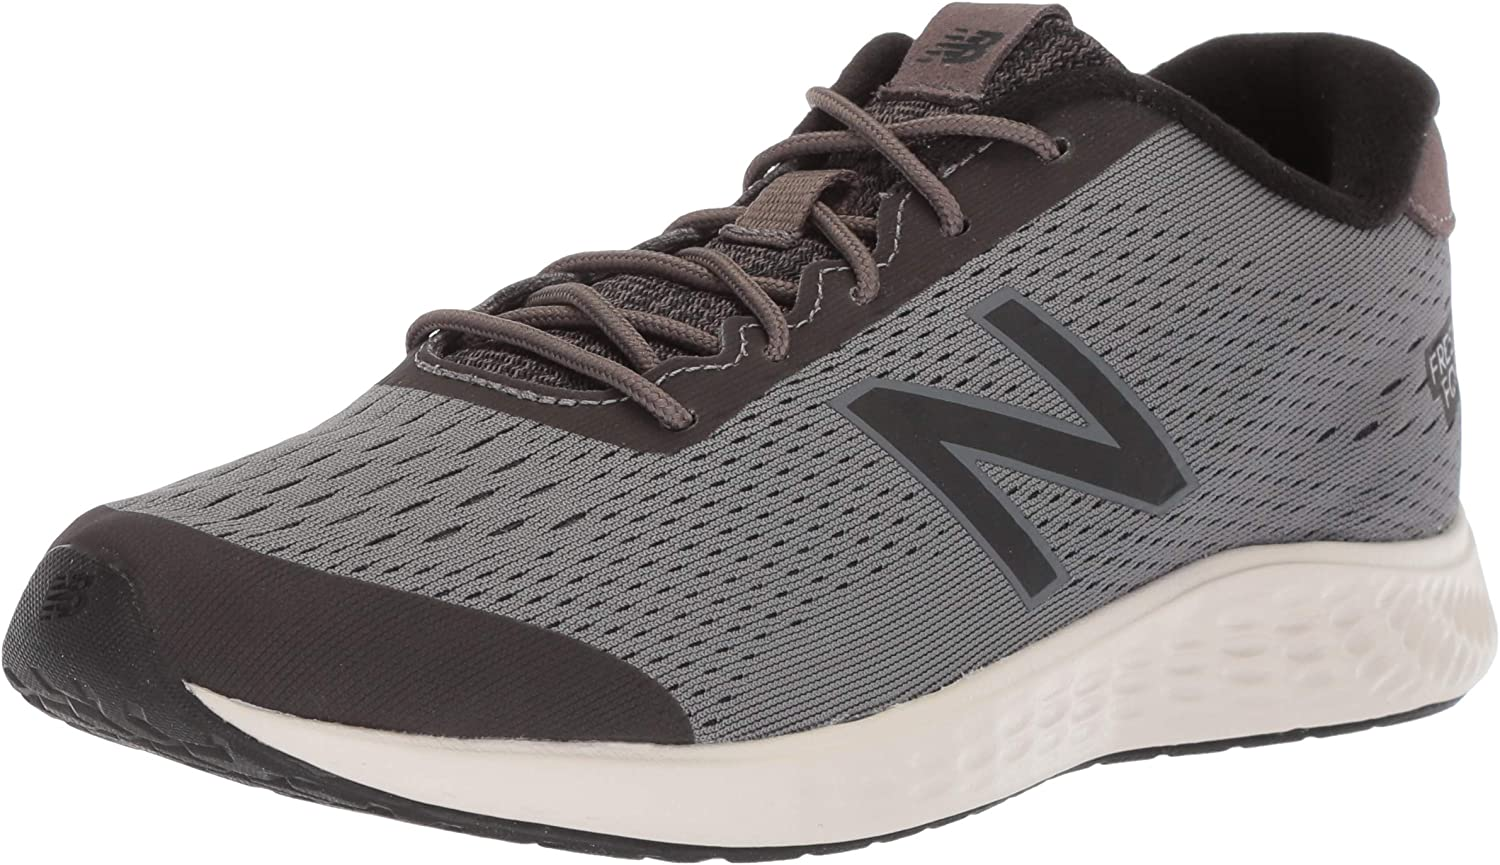 New Balance Boys' Arishi Next V1 Running shoes, Dark Gull Grey Black, 3.5 W US Little Kid